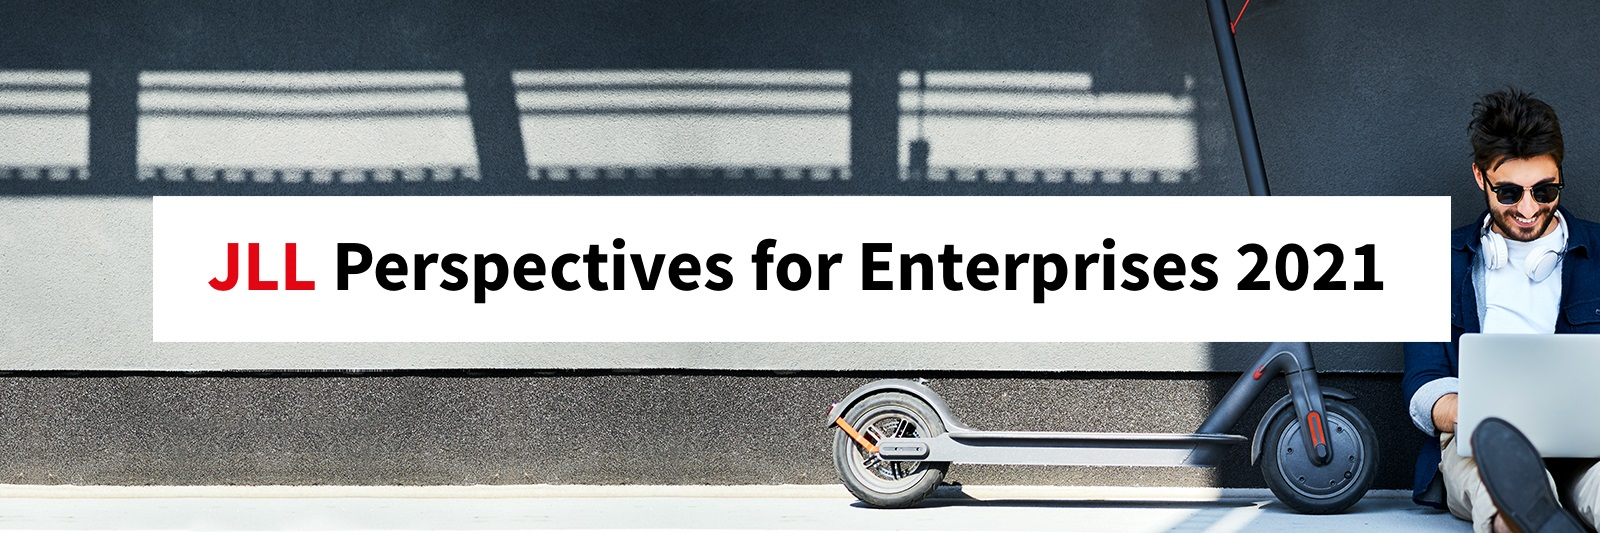 JLL Perspectives for Enterprises 2021